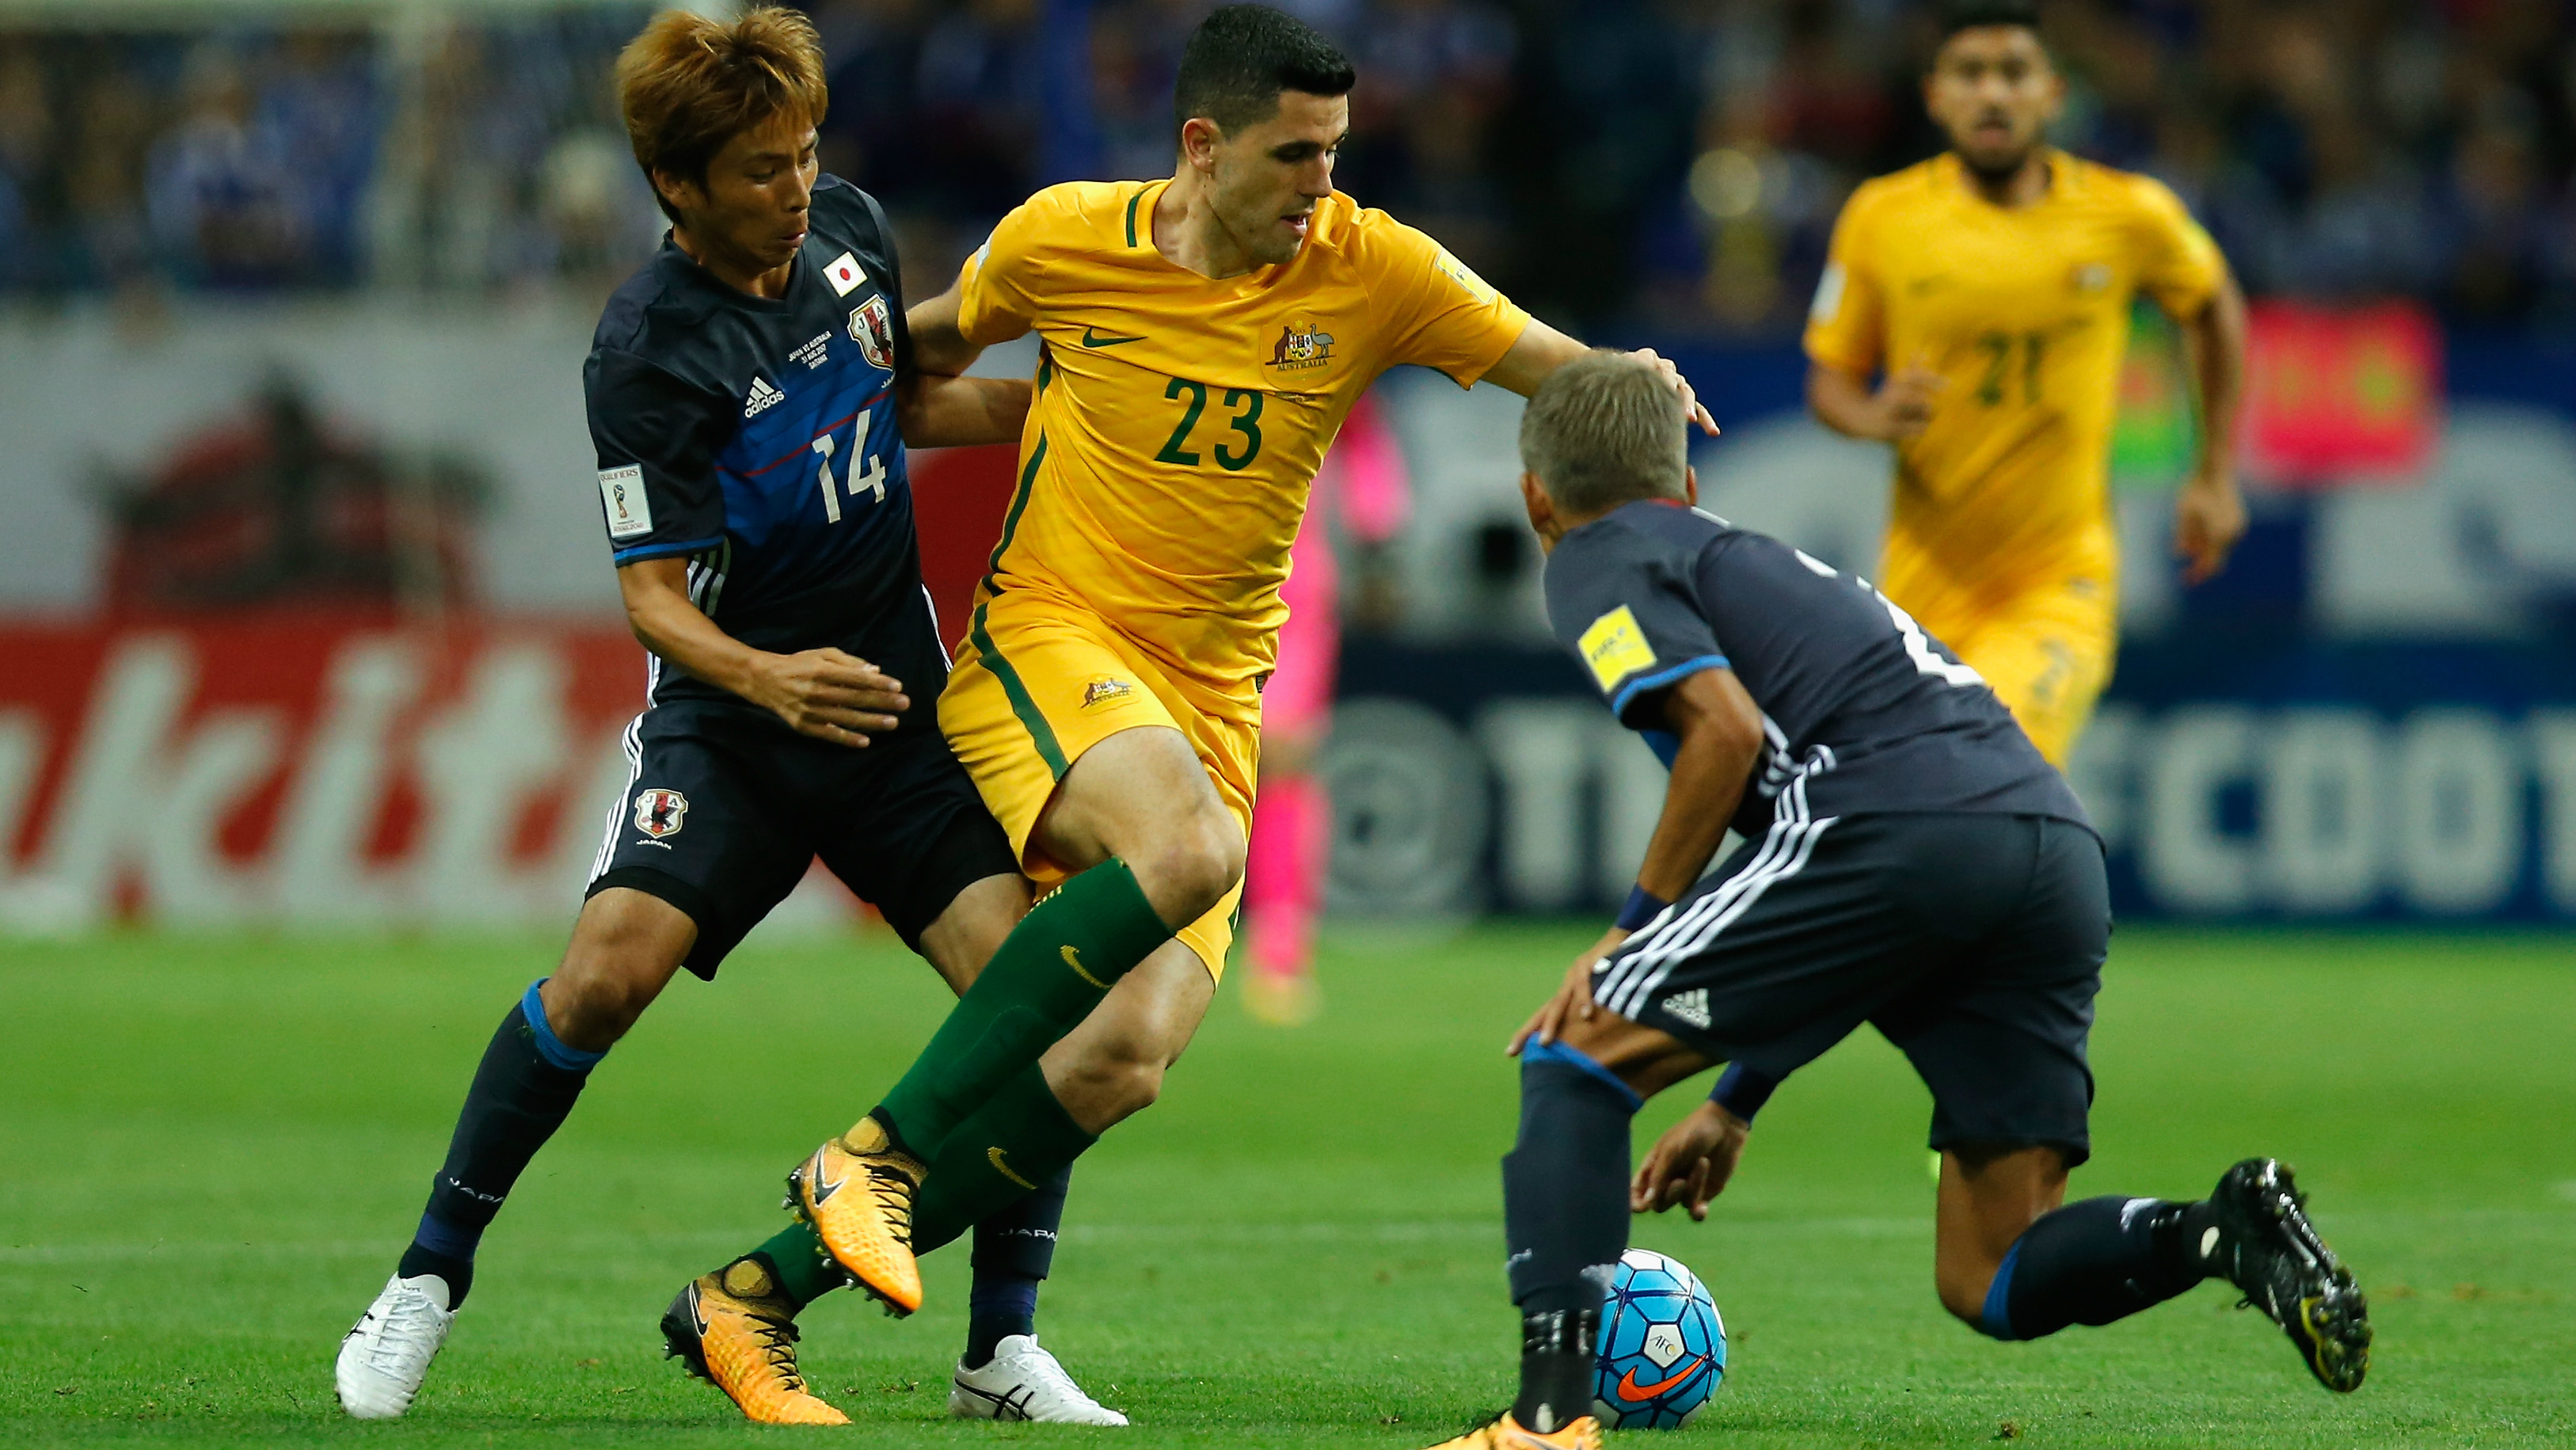 Caltex Socceroos playmaker Tom Rogic looks to take on a couple of Japanese defenders.